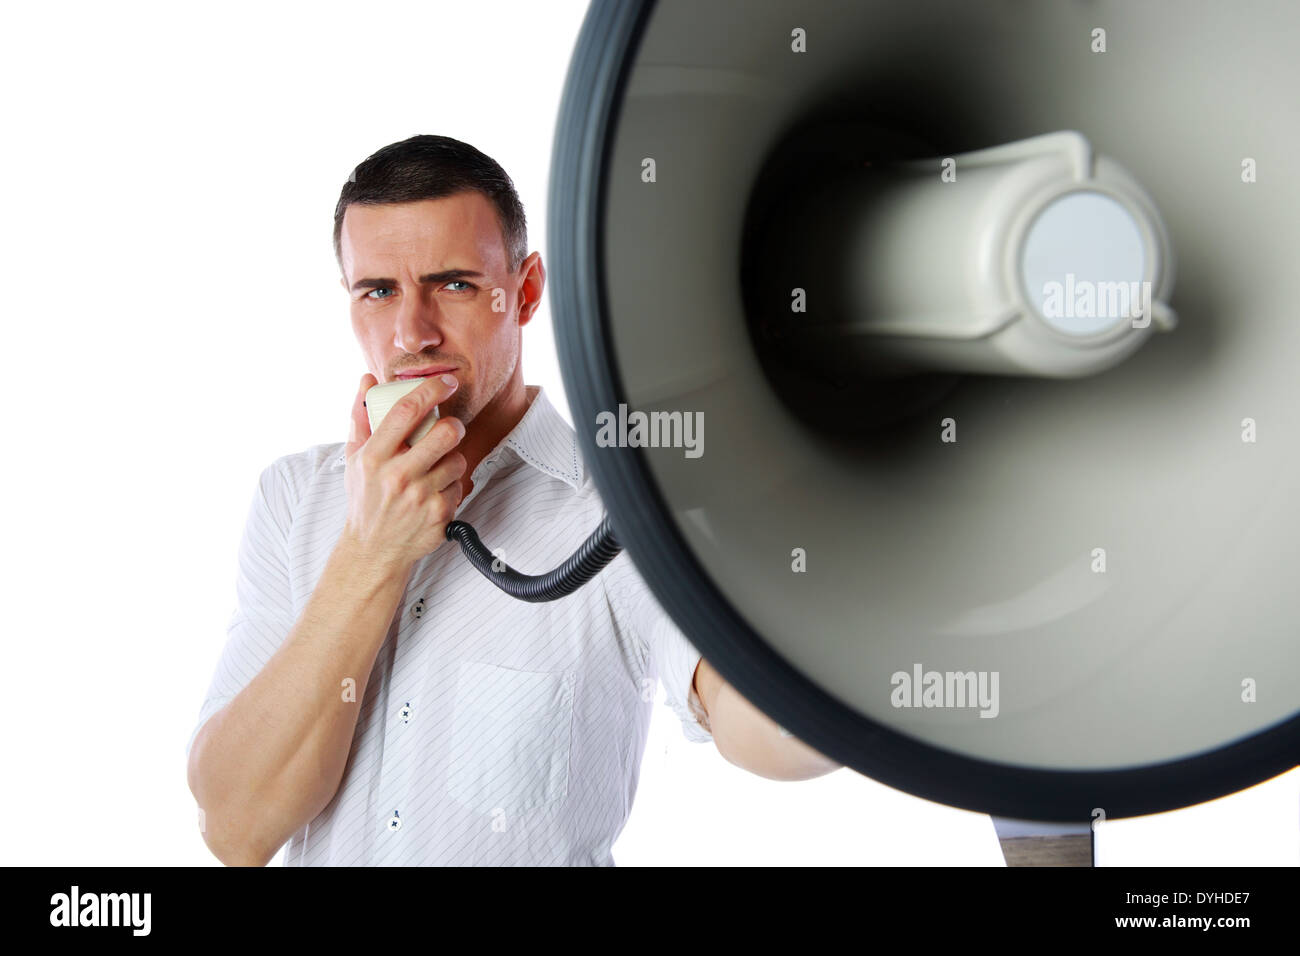 Portrait of a man roaring loudly into megaphone over white background - Stock Image